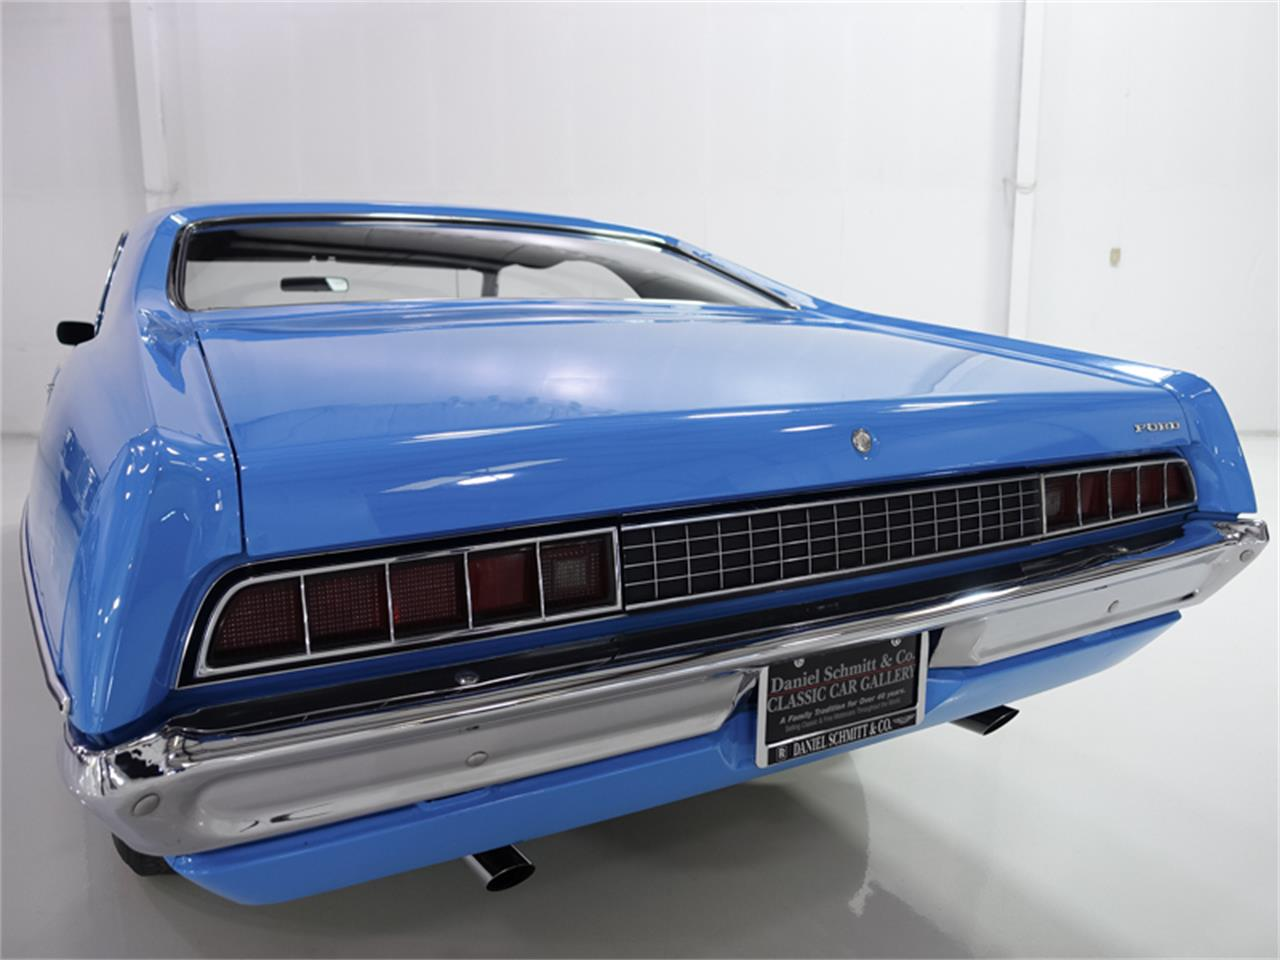 Large Picture of Classic 1970 Ford Torino located in Missouri Offered by Daniel Schmitt & Co. - MSON